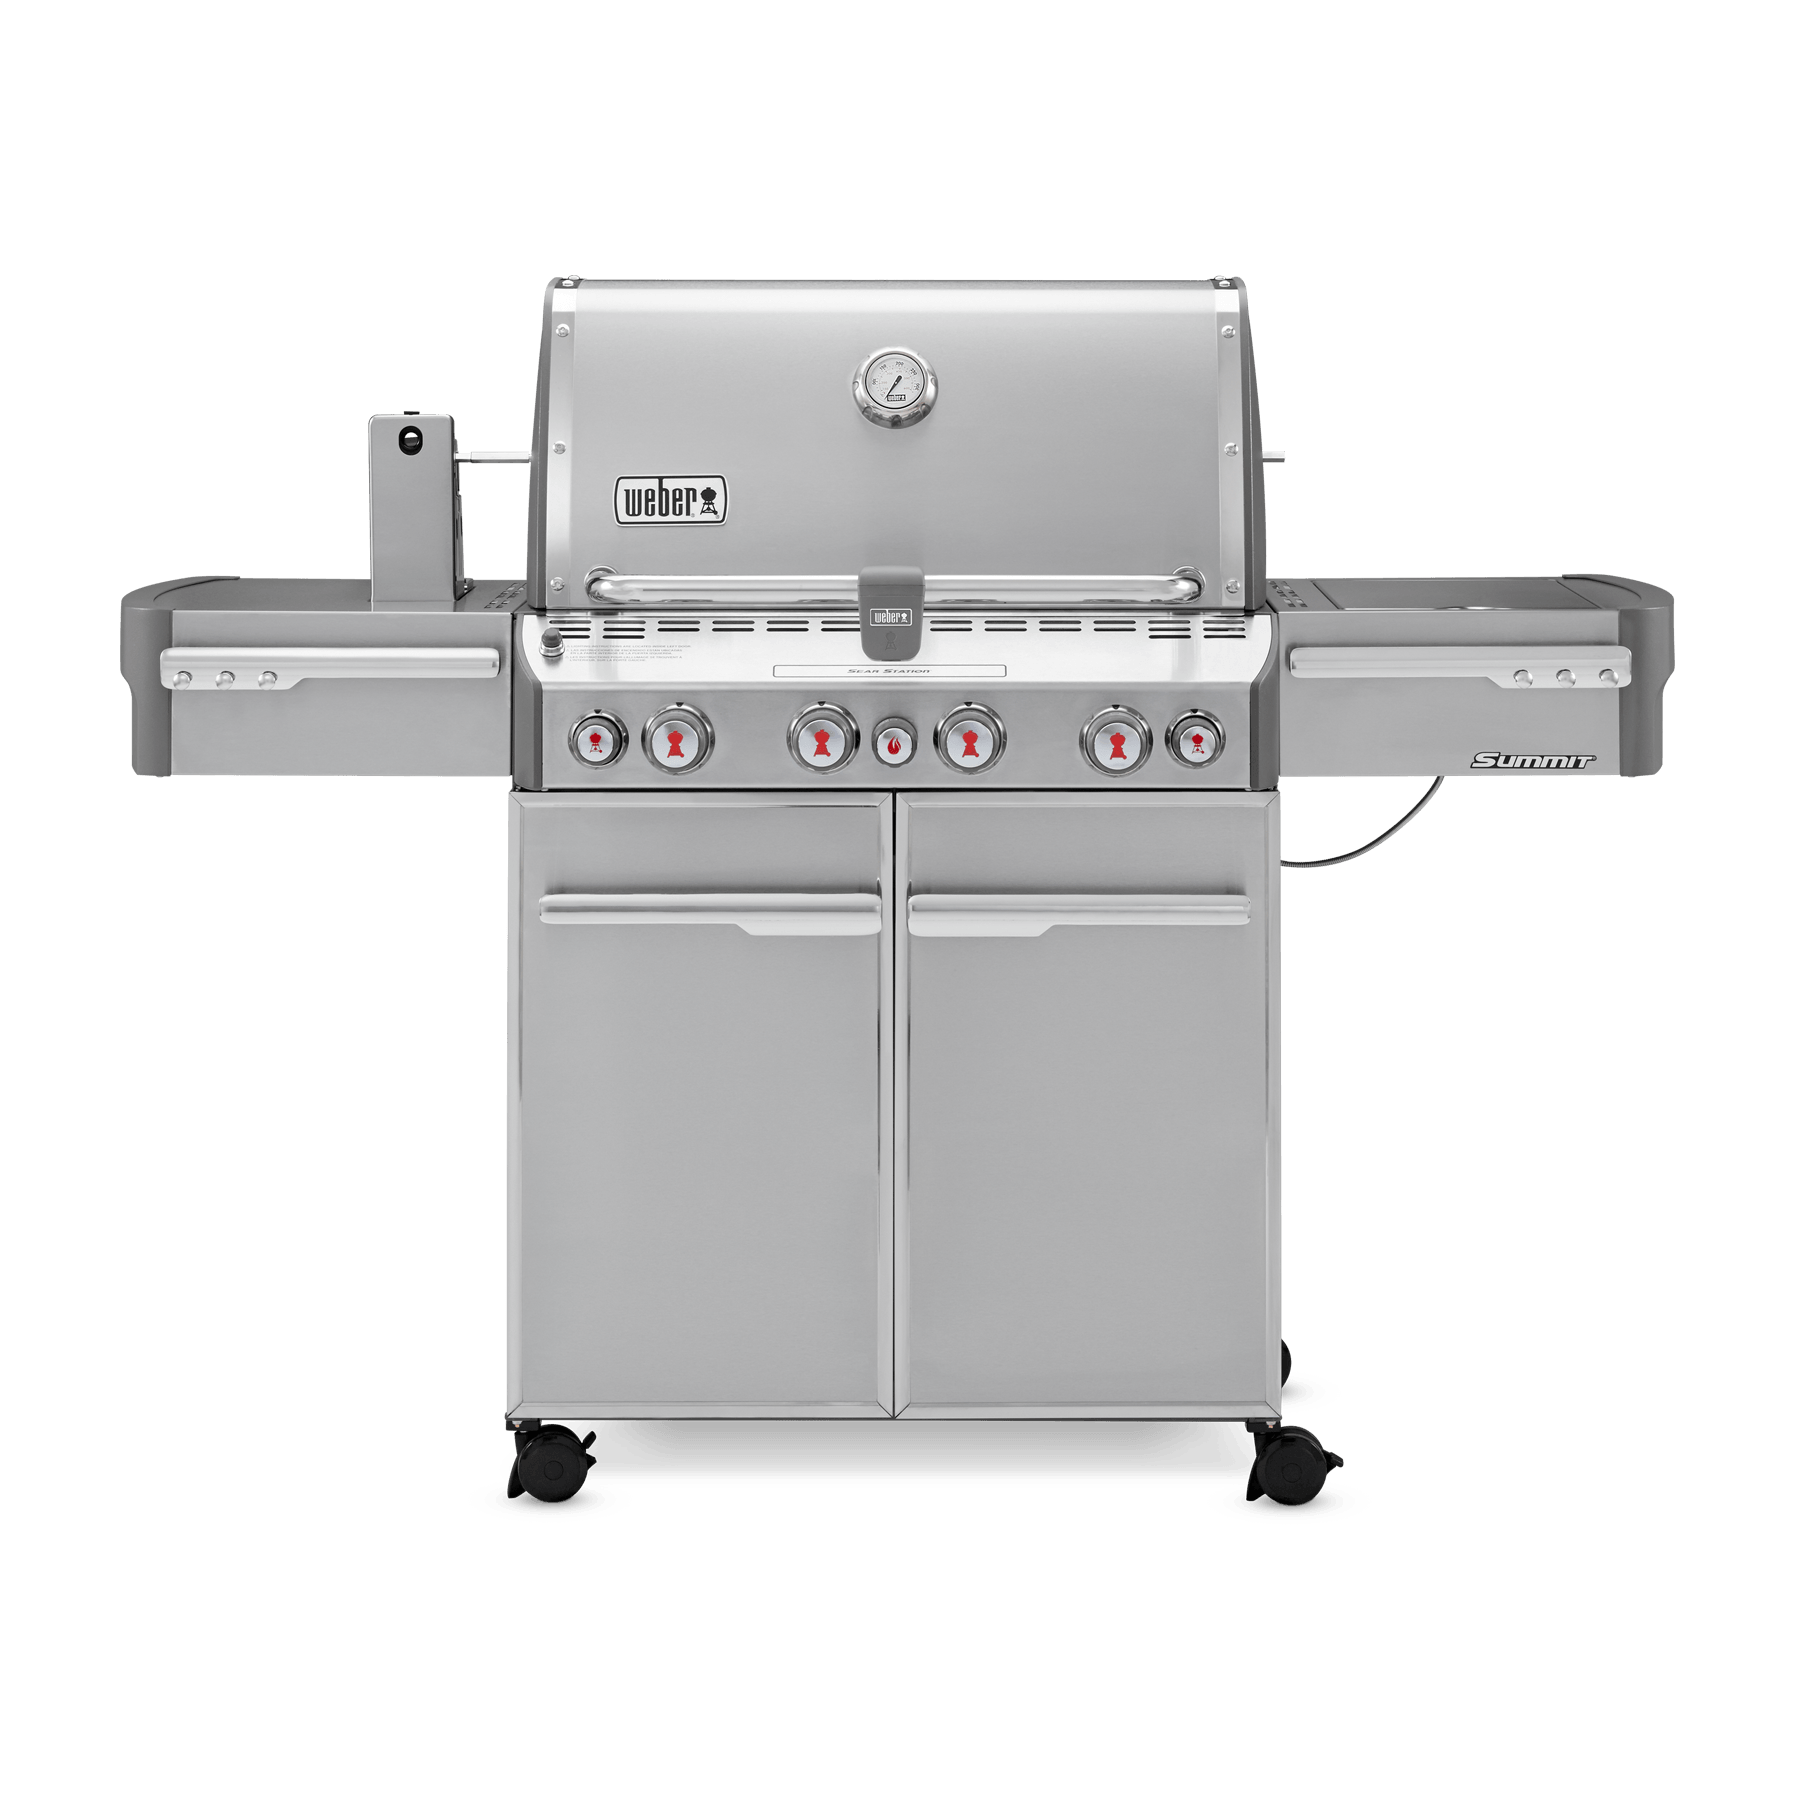 Segmüller Küche Weber Grill Weber Outdoor Küche Sustainapod Elston Outdoor Kitchen